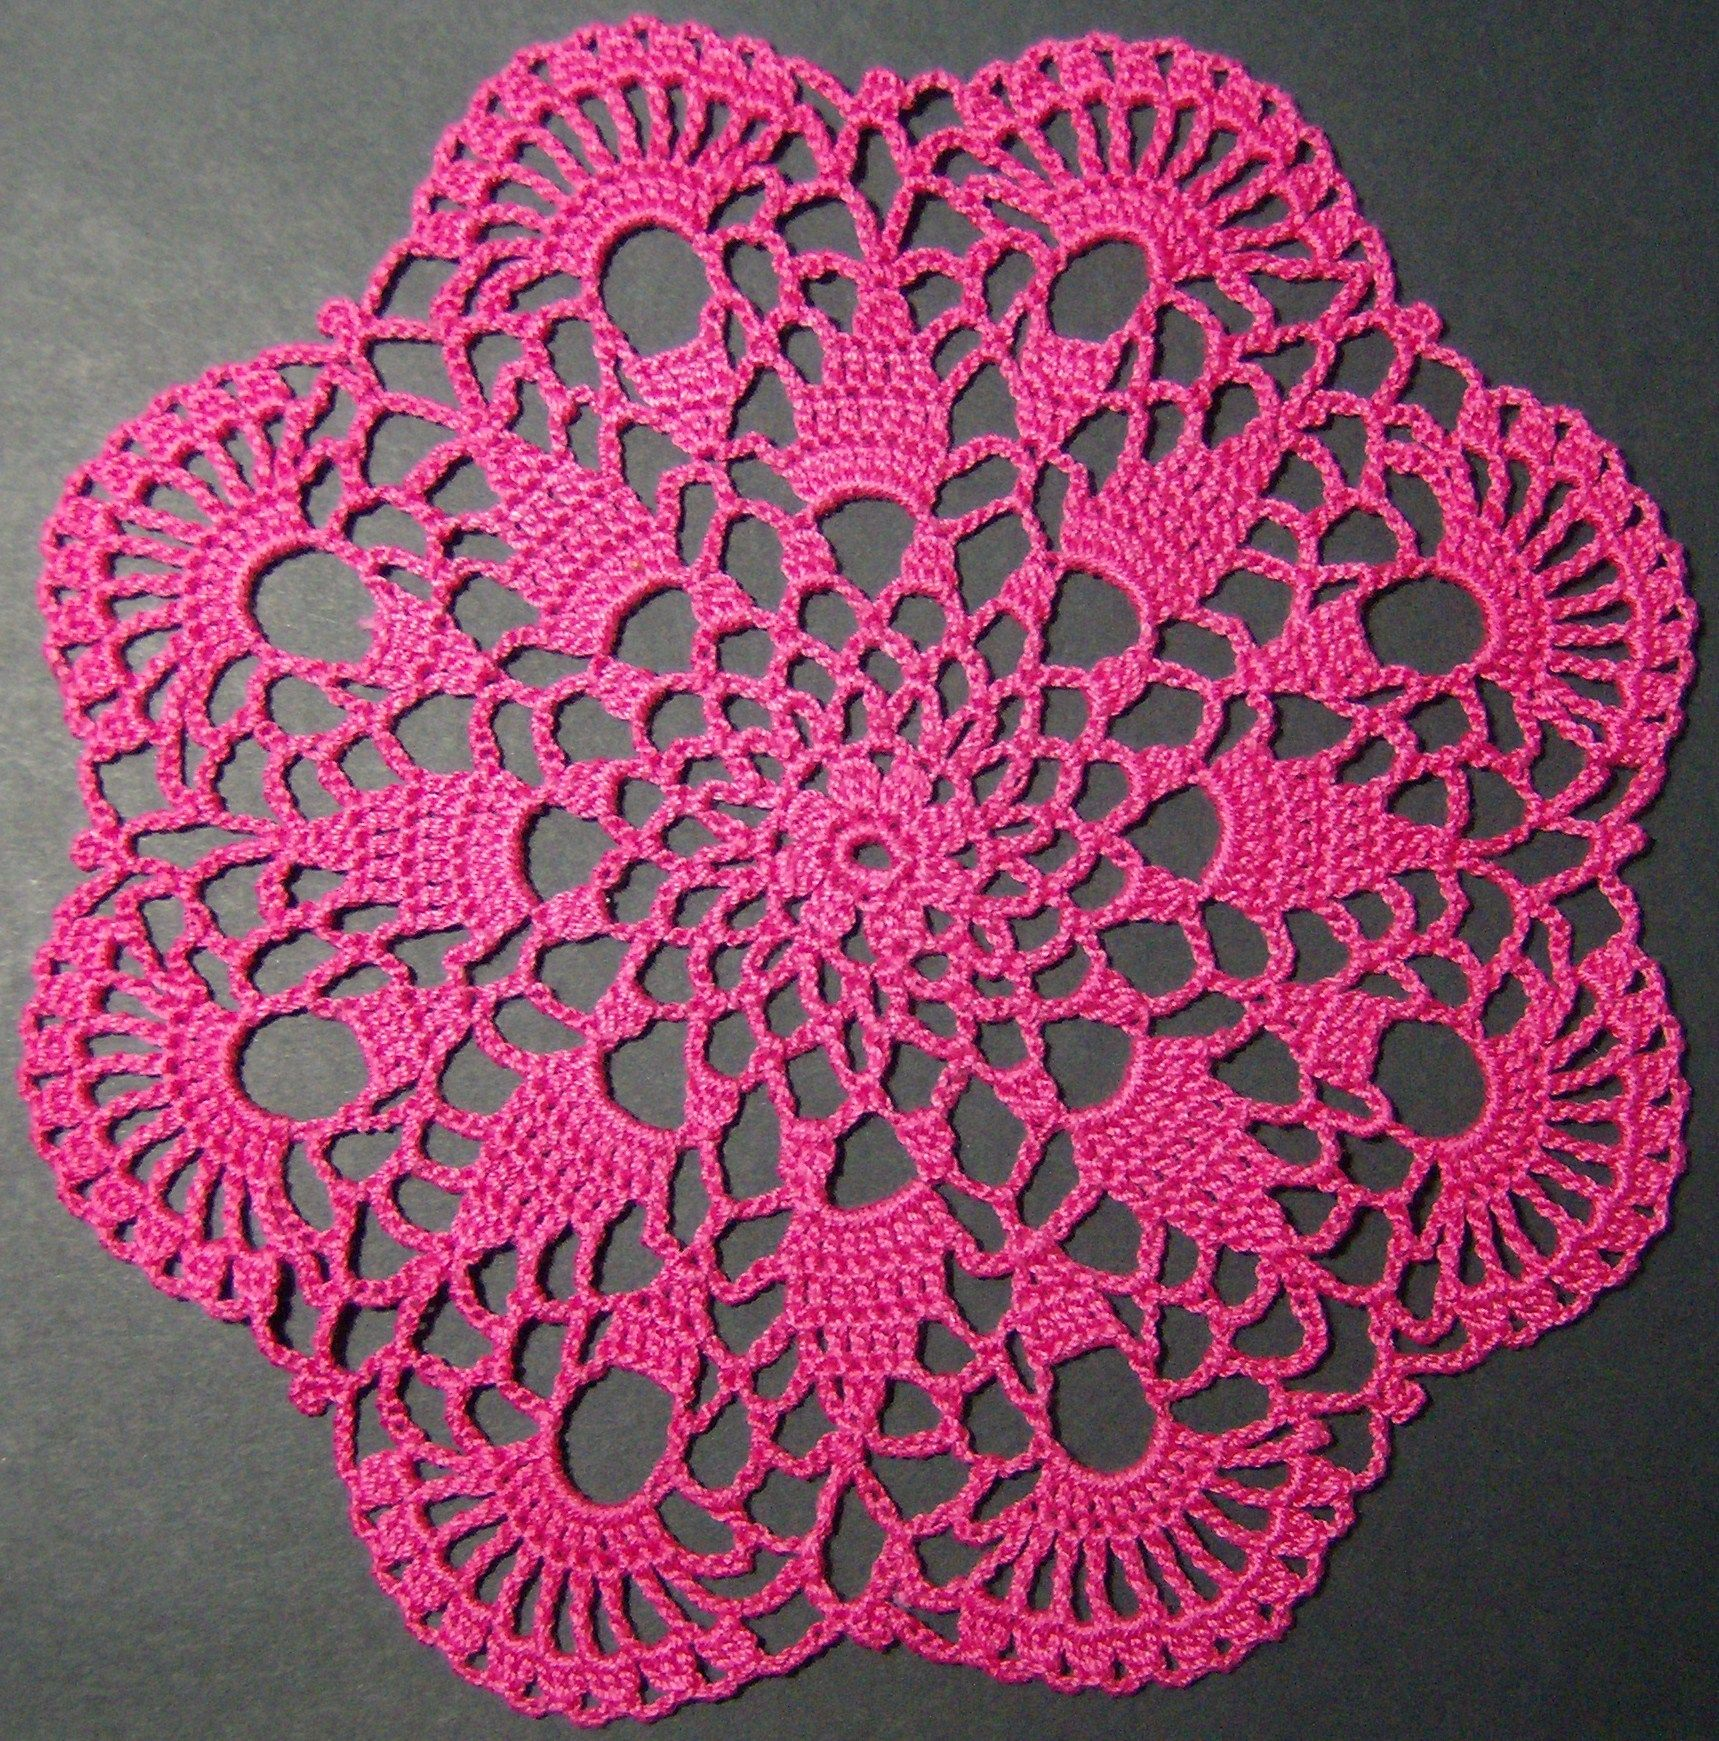 Crochet Doily | Crochet Doilies I\'ve Made | Pinterest | Crochet ...